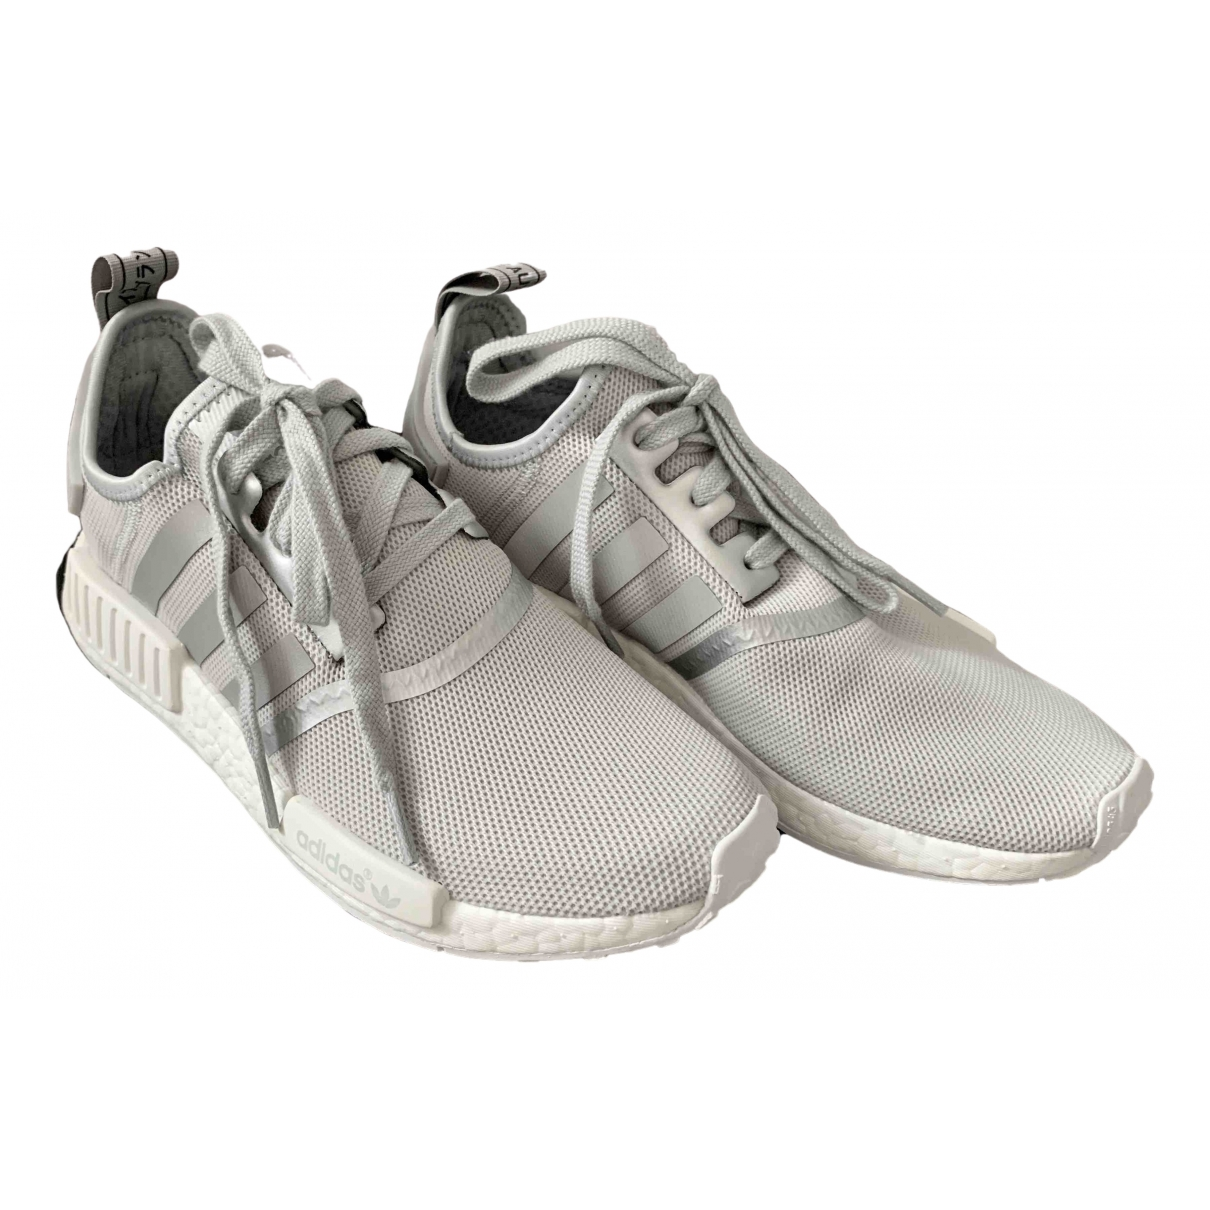 Adidas Nmd Grey Trainers for Women 8 US